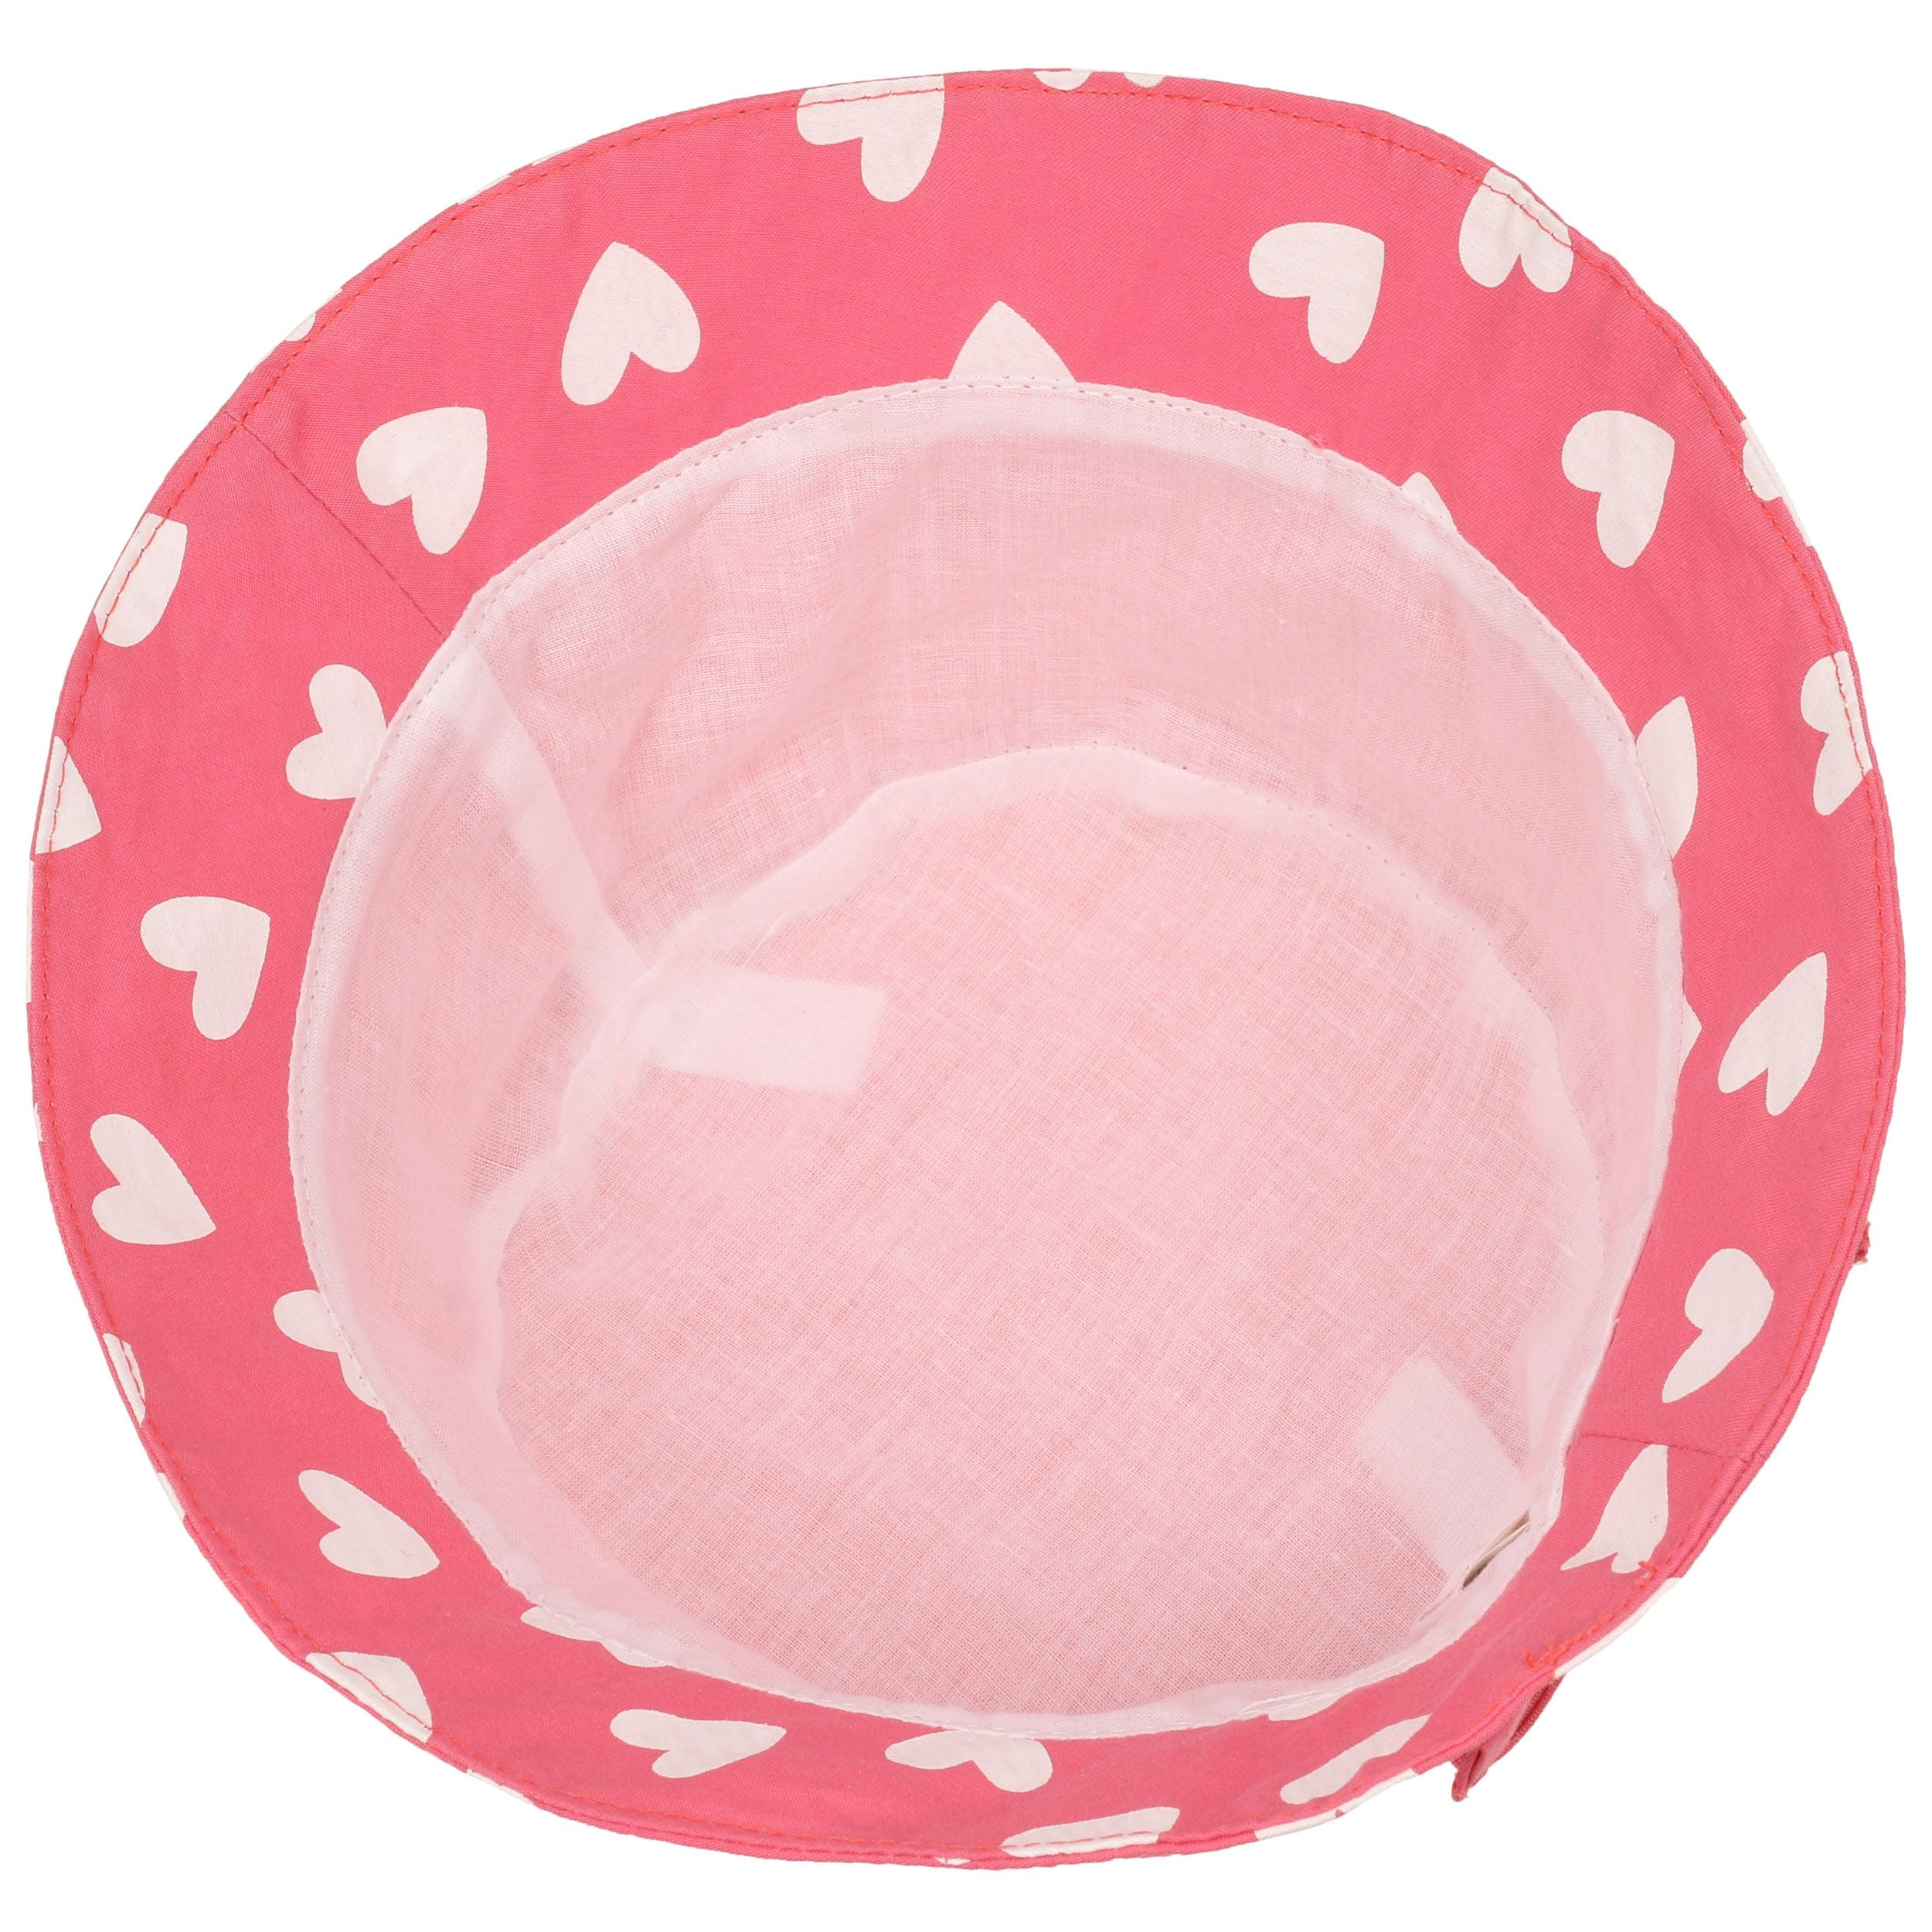 ... Cappello da Bambino Girly Hearts by maximo - rosa 2 ... eb7041c17ab6